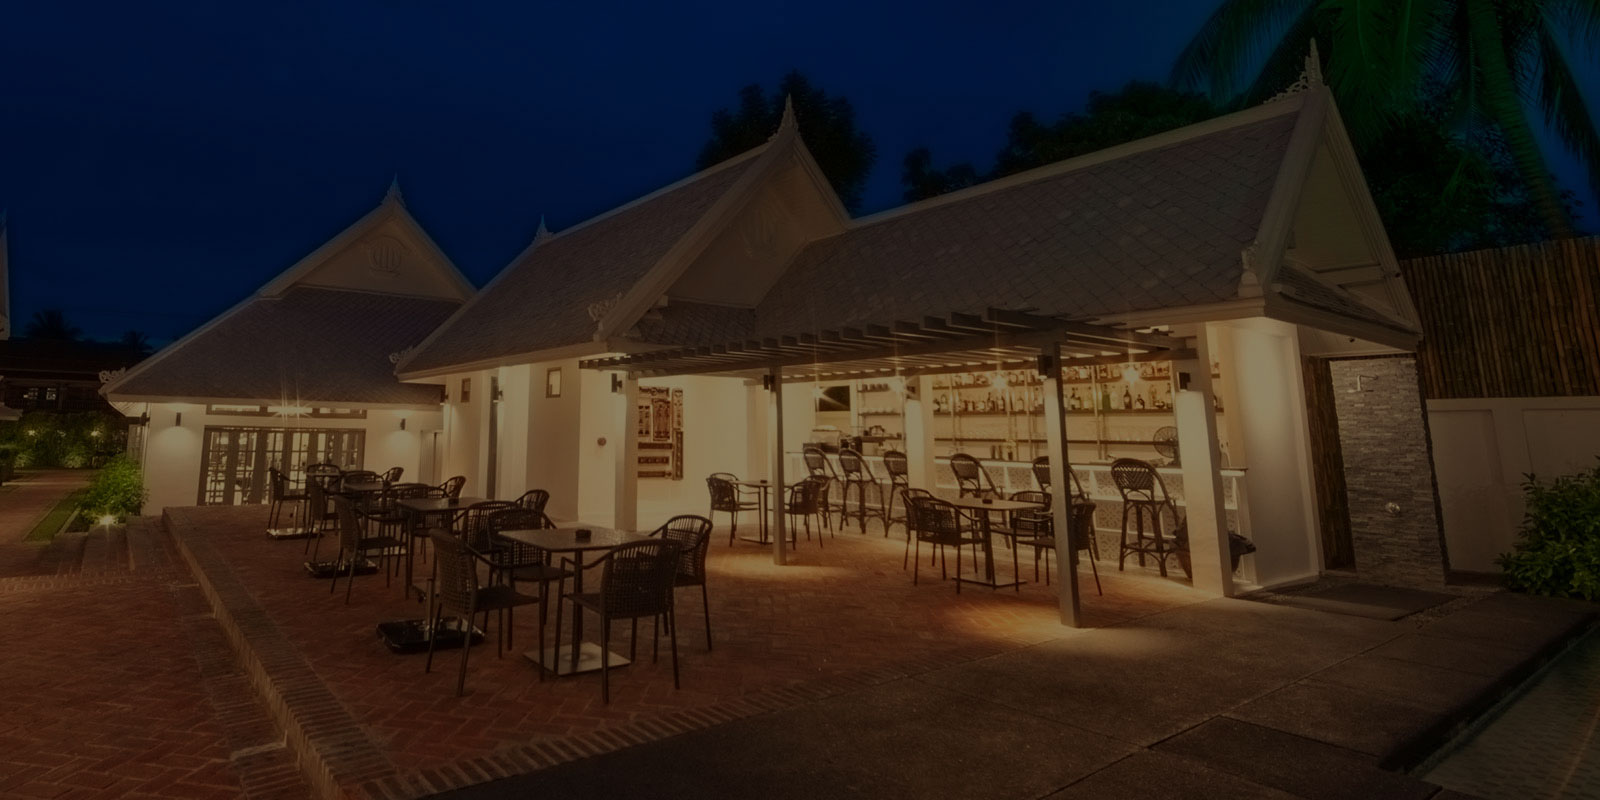 AUTHENTIC LAO CUISINE <br>SERVED IN AN ELEGANT SETTING